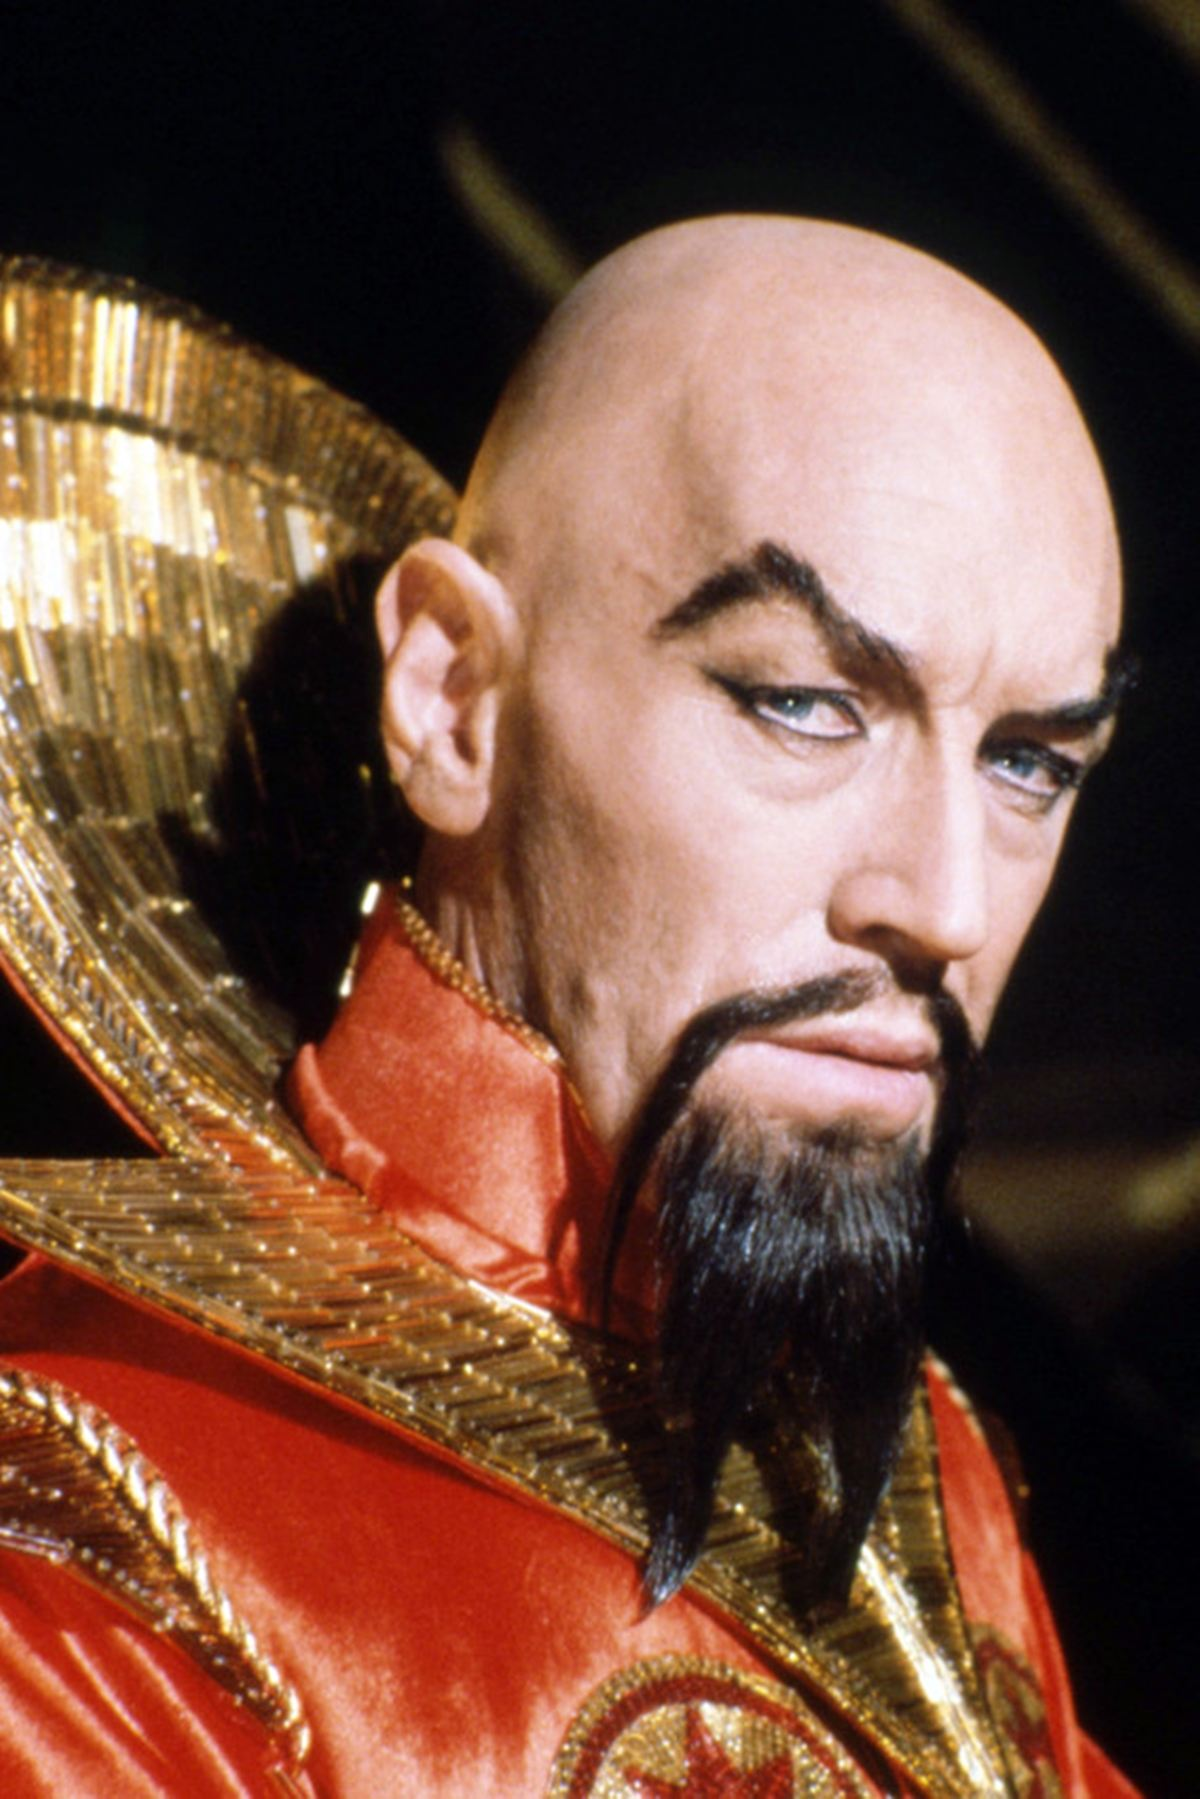 7 10 23 Things You Probably Didn't Know About Flash Gordon